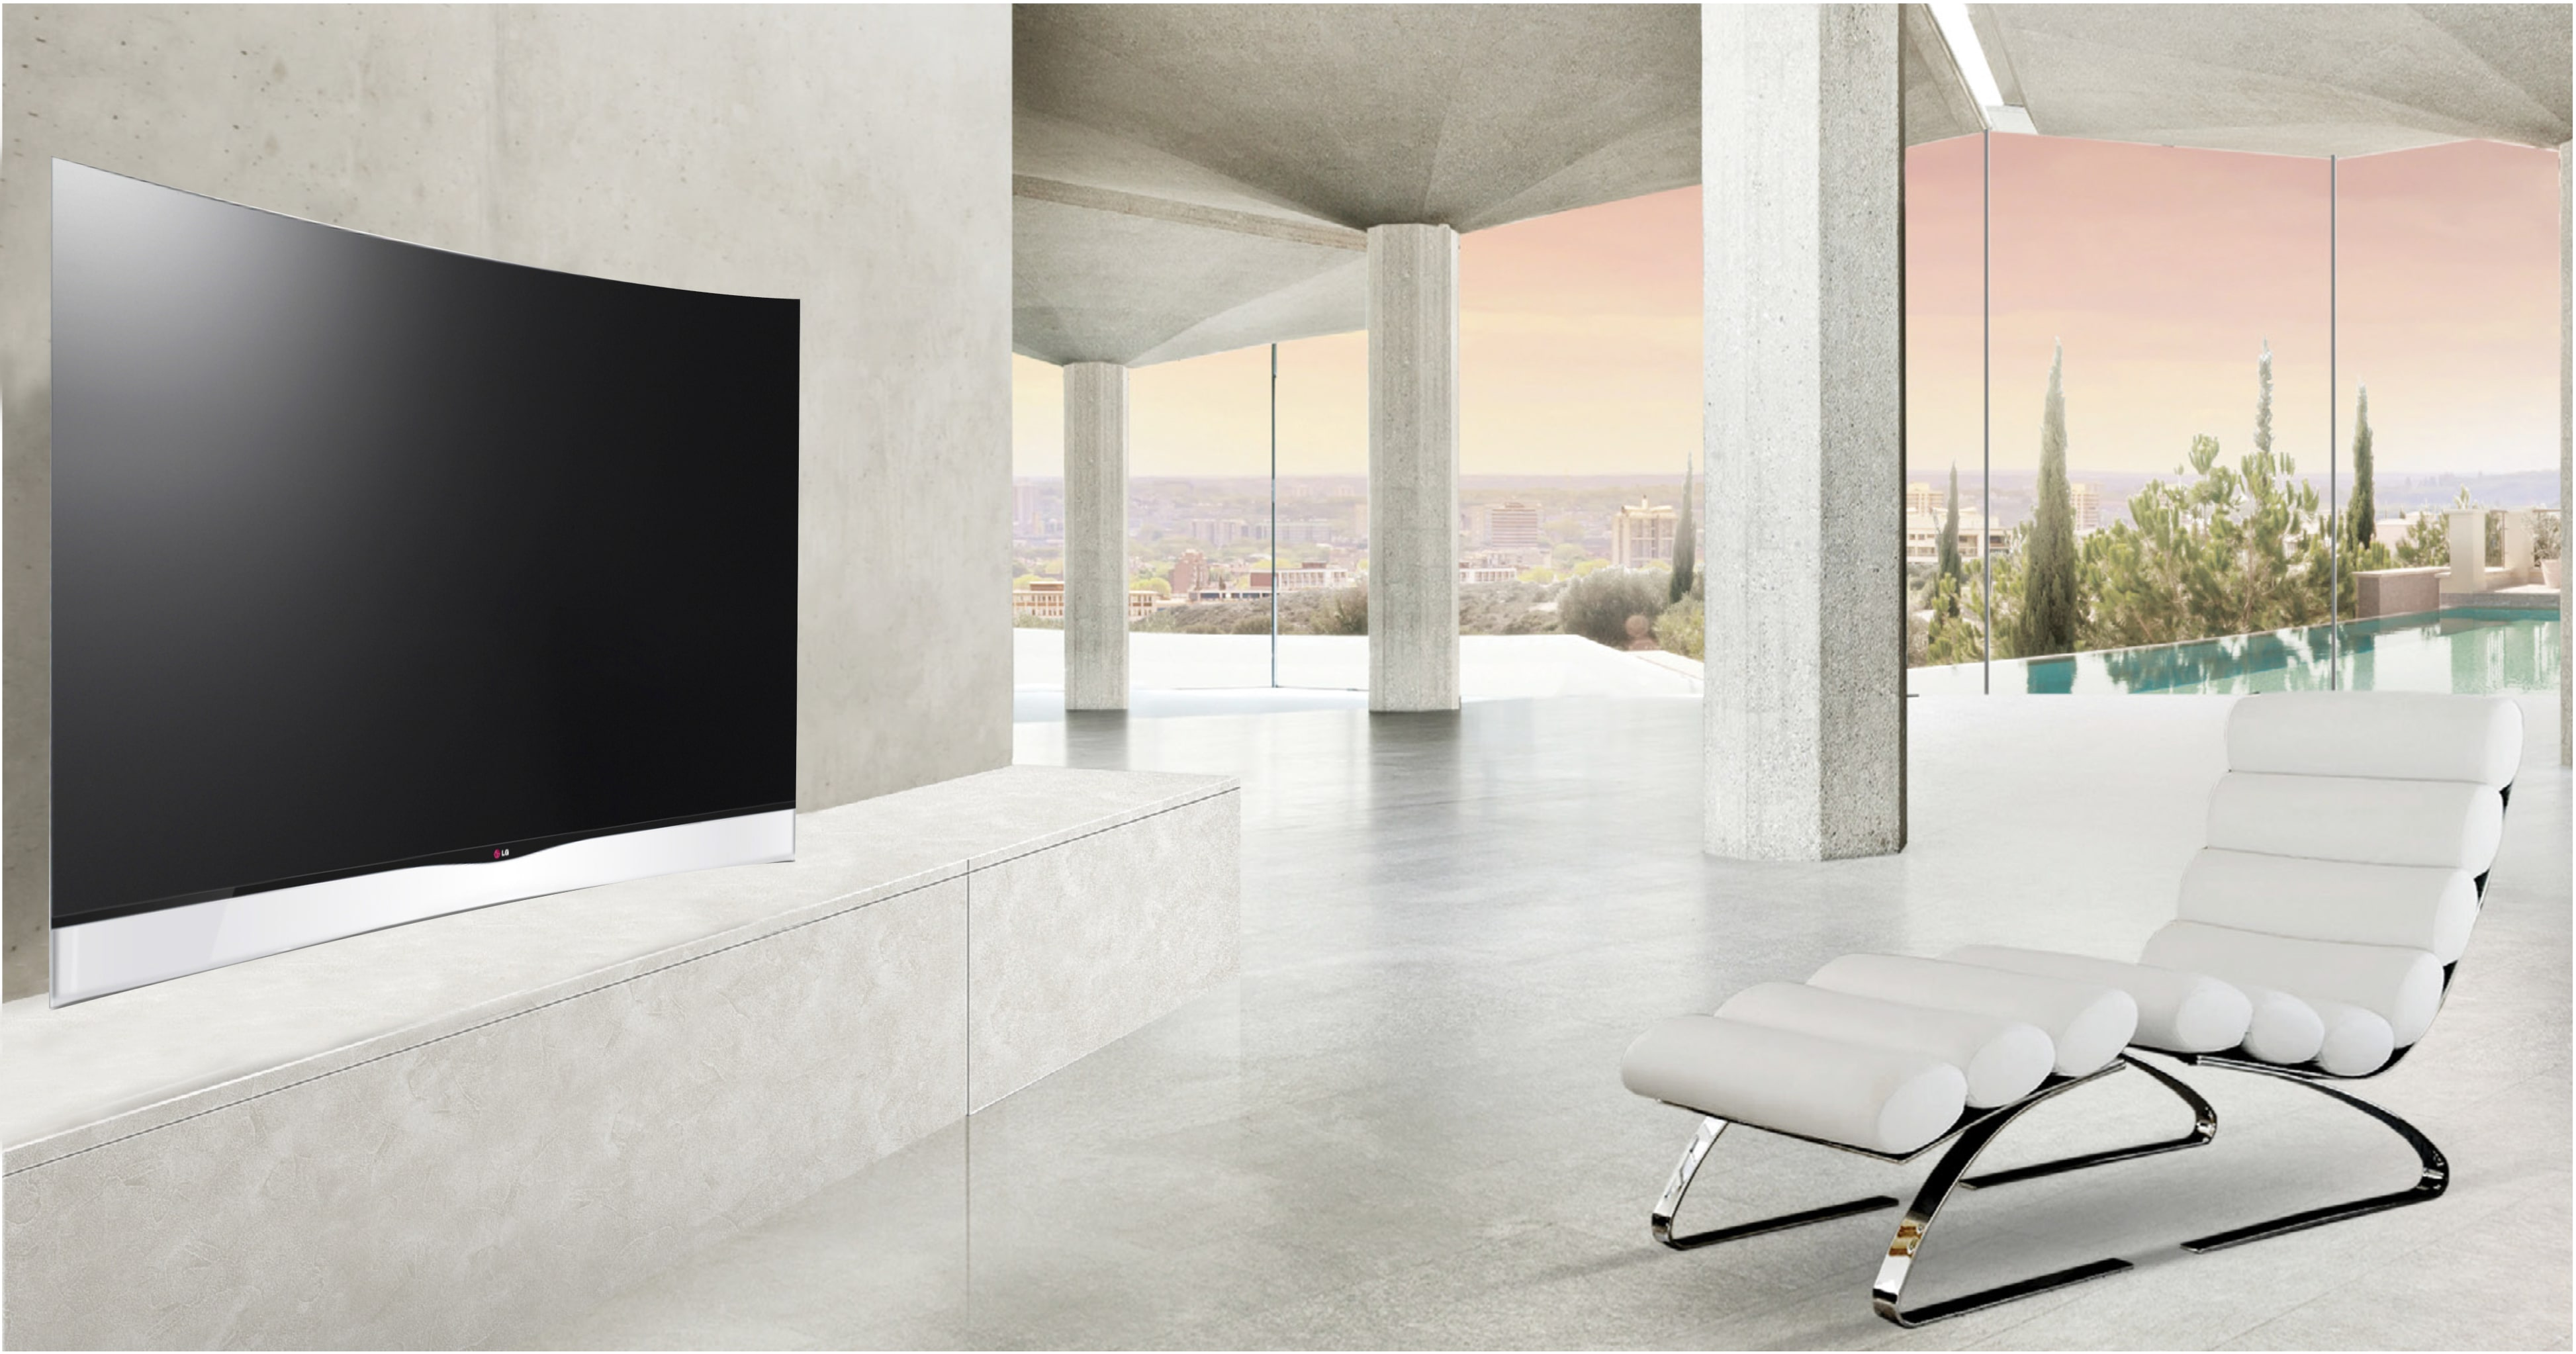 LG ANNOUNCES 2013 HOME ENTERTAINMENT RANGE AND BRAND